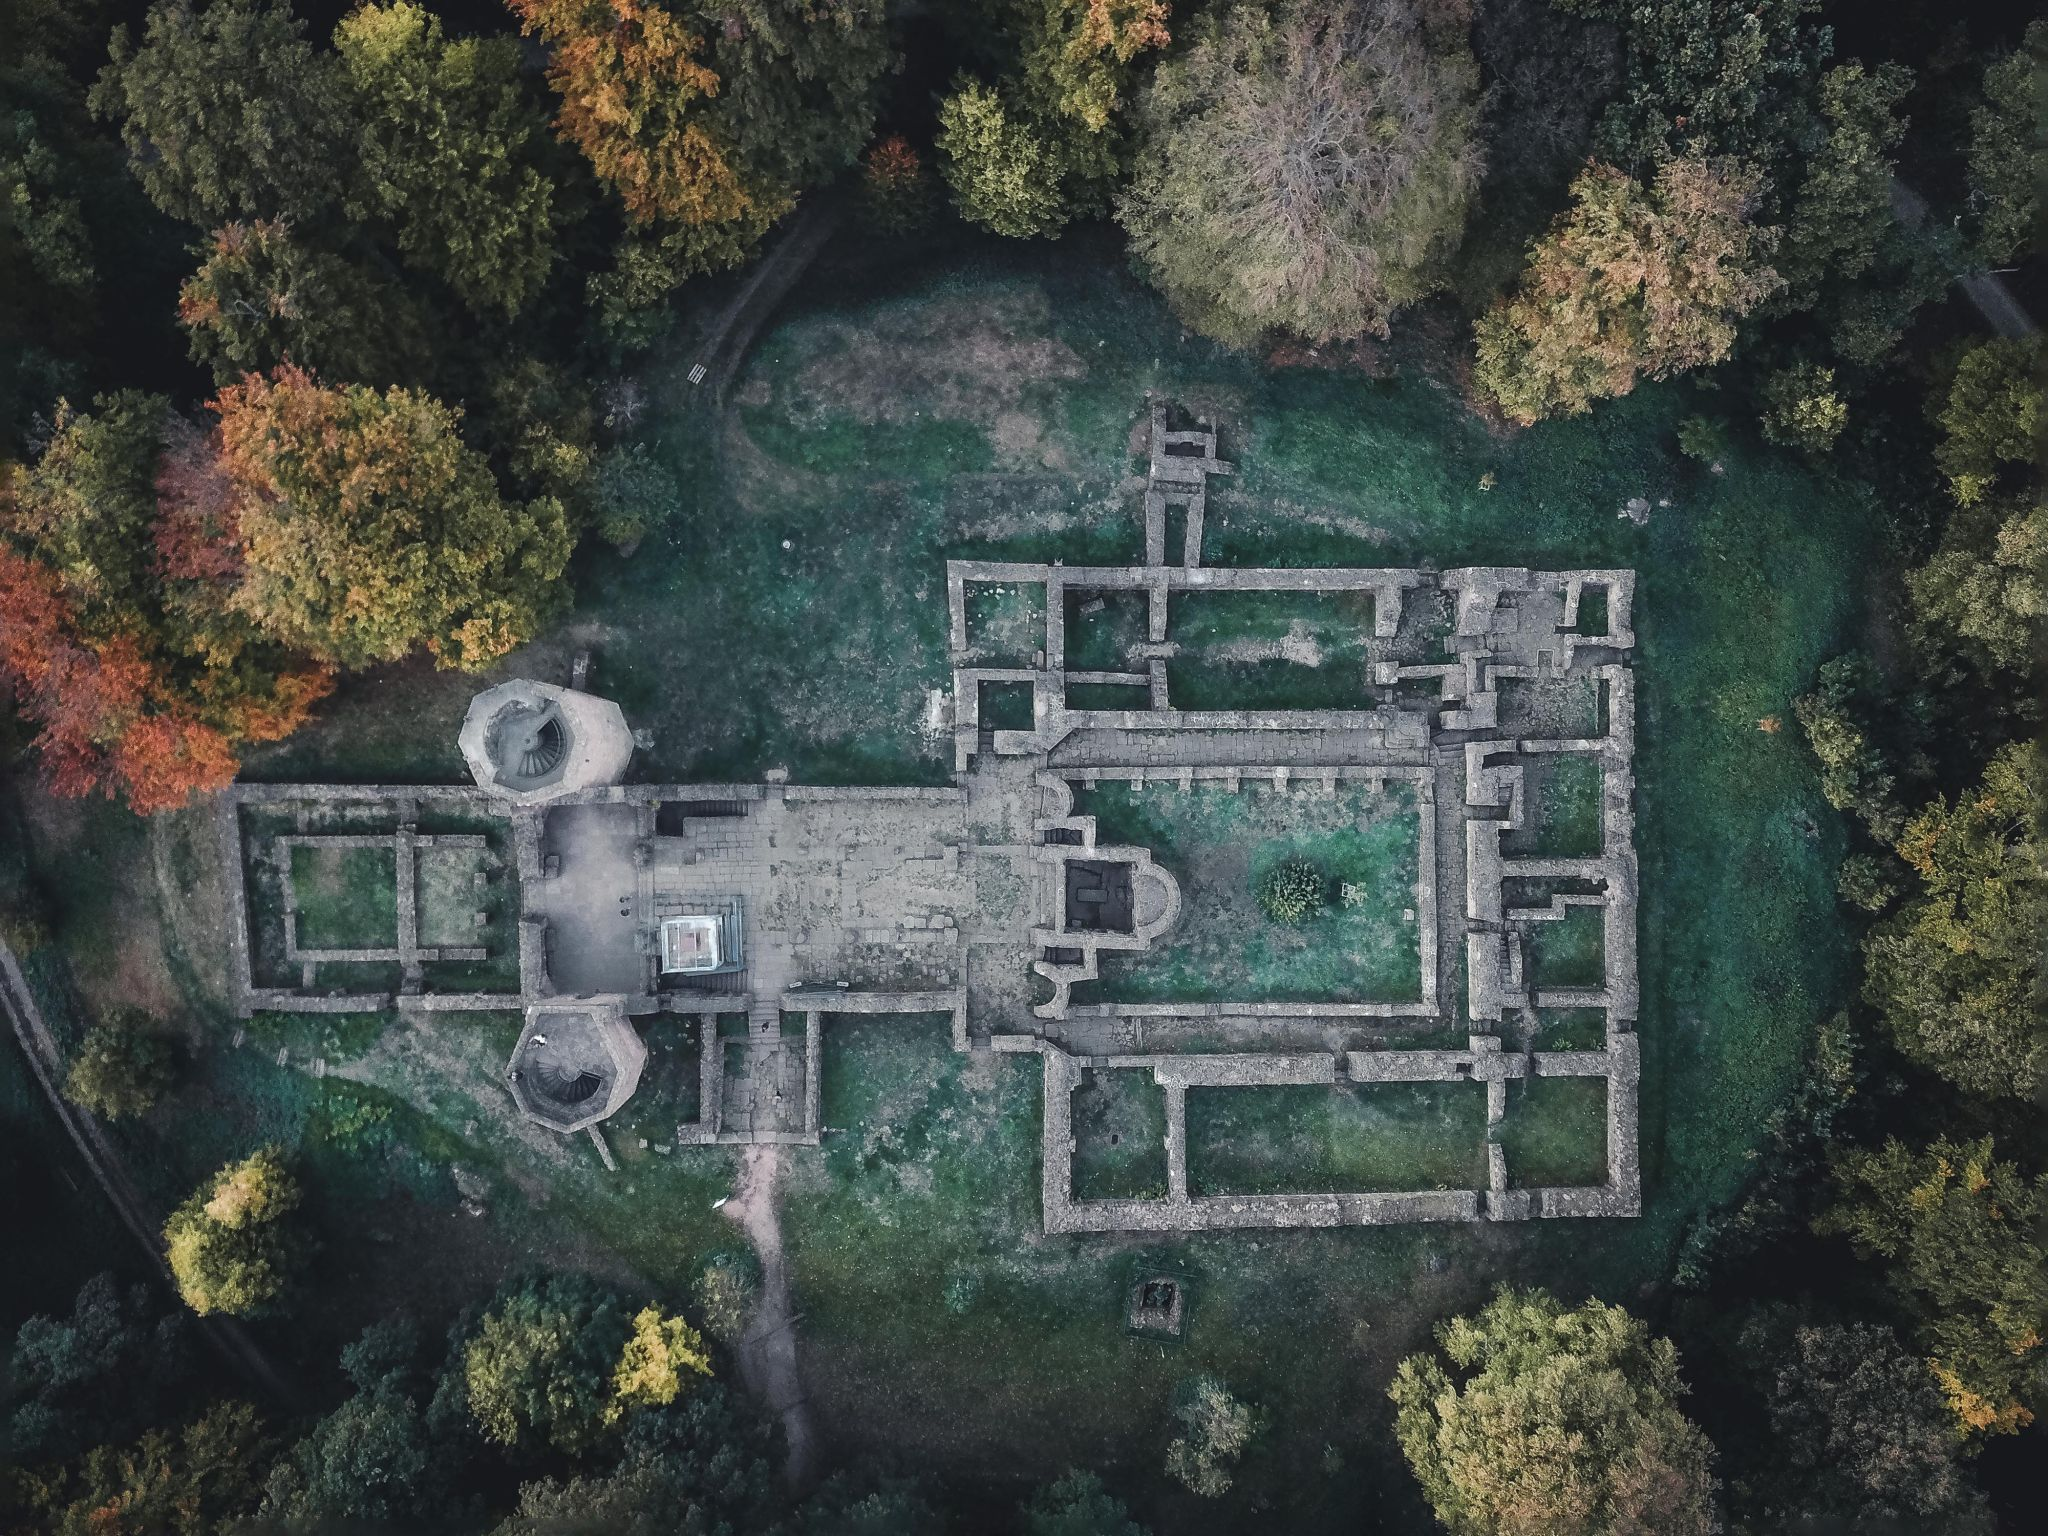 St. Michael Monastery Ruins [Drone], Germany